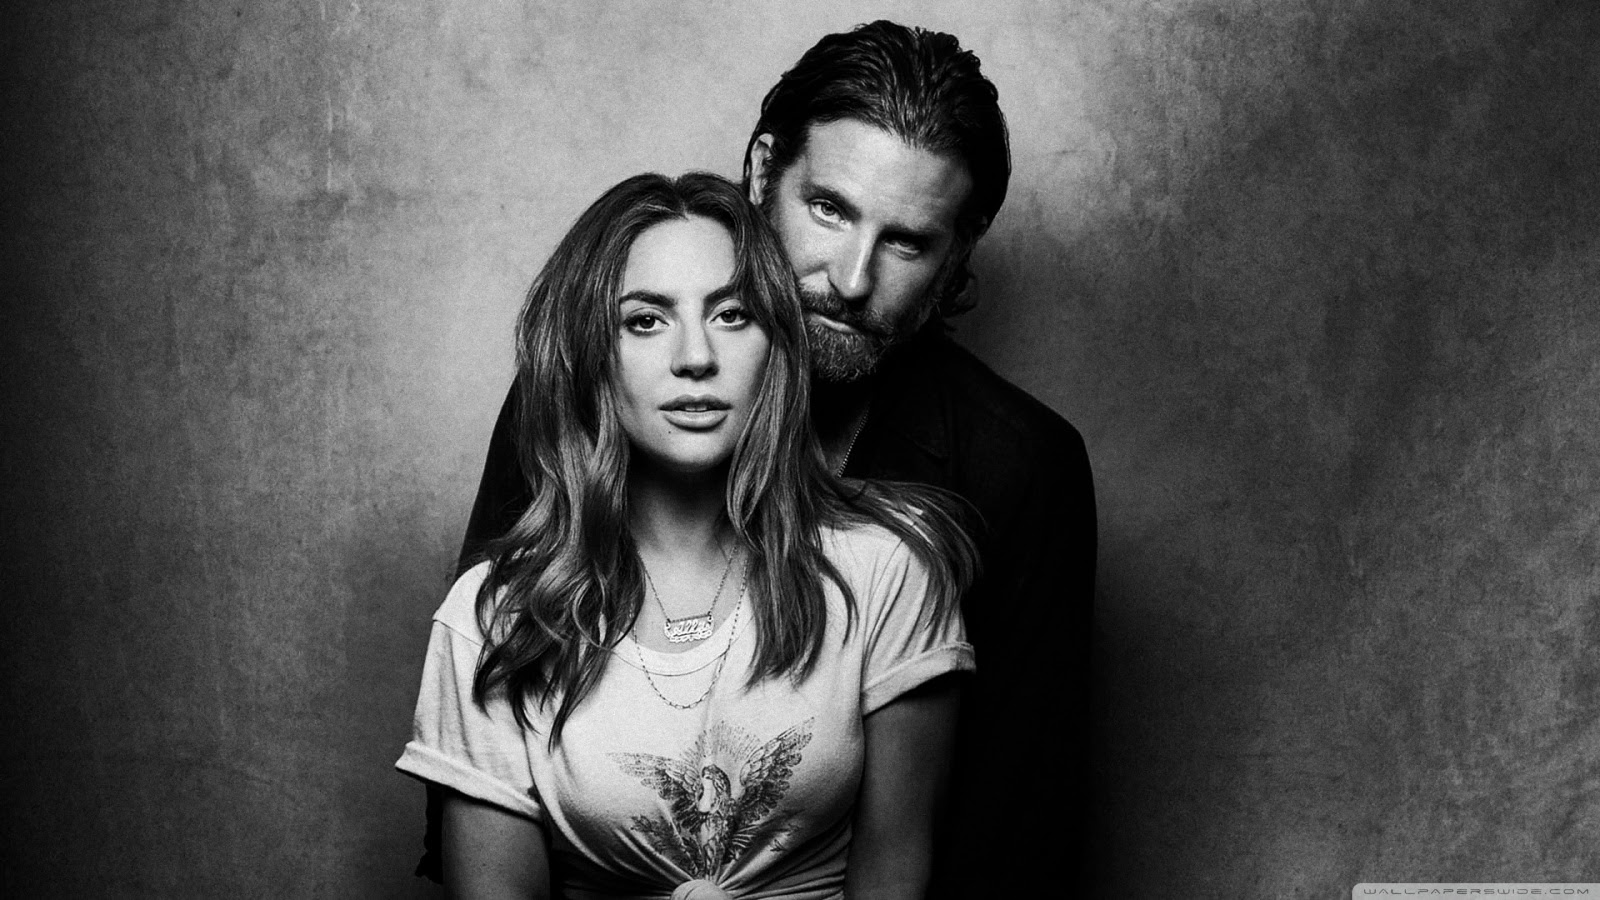 A Star Is Born Ultra Hd Desktop Background Wallpaper For 4k Uhd Tv